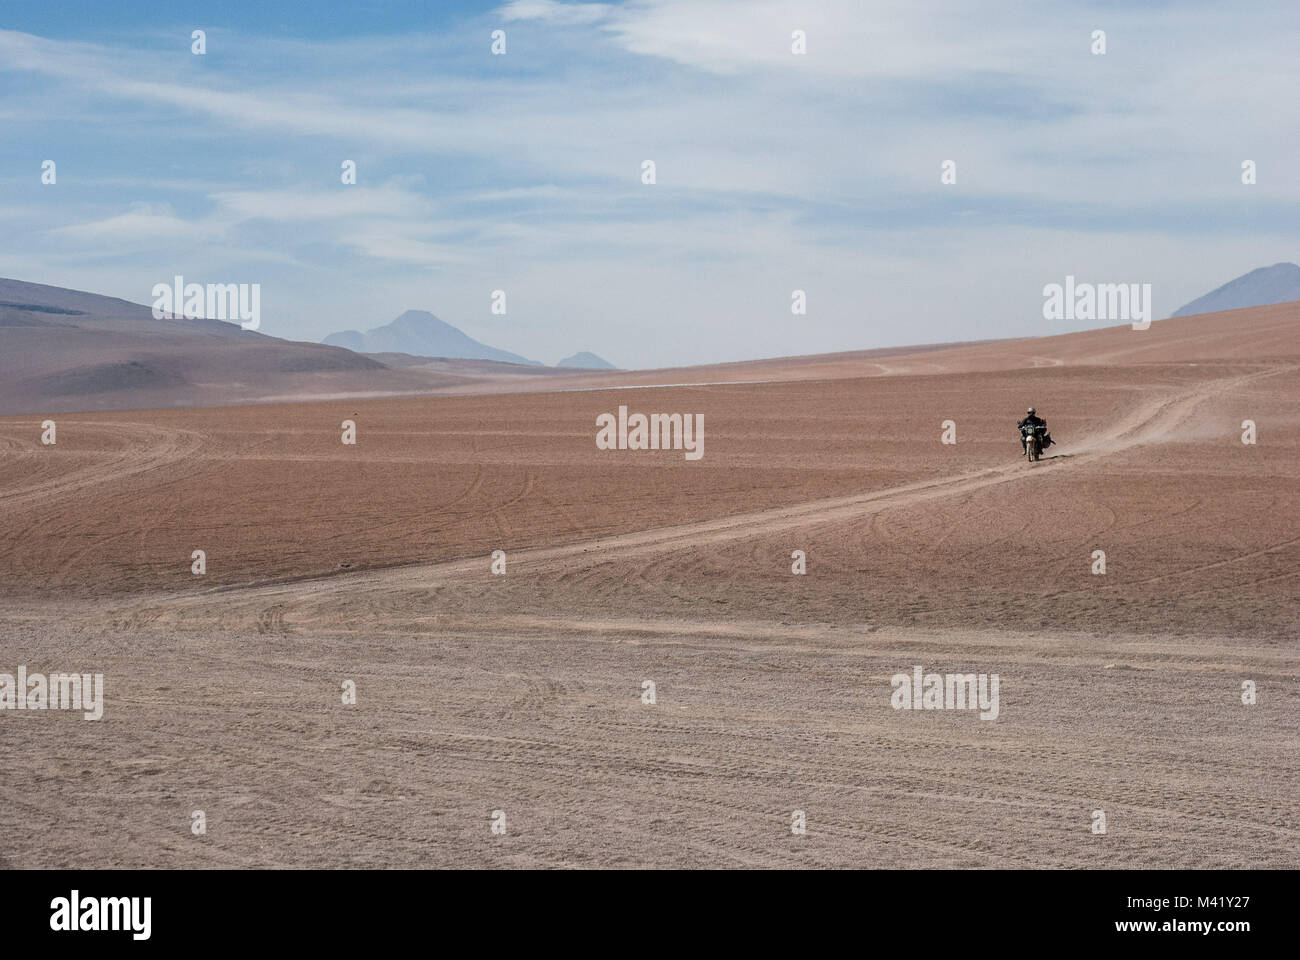 A person riding a motorbike across a deserted sandy landscape in the high plains of the Andes, Bolivia - Stock Image